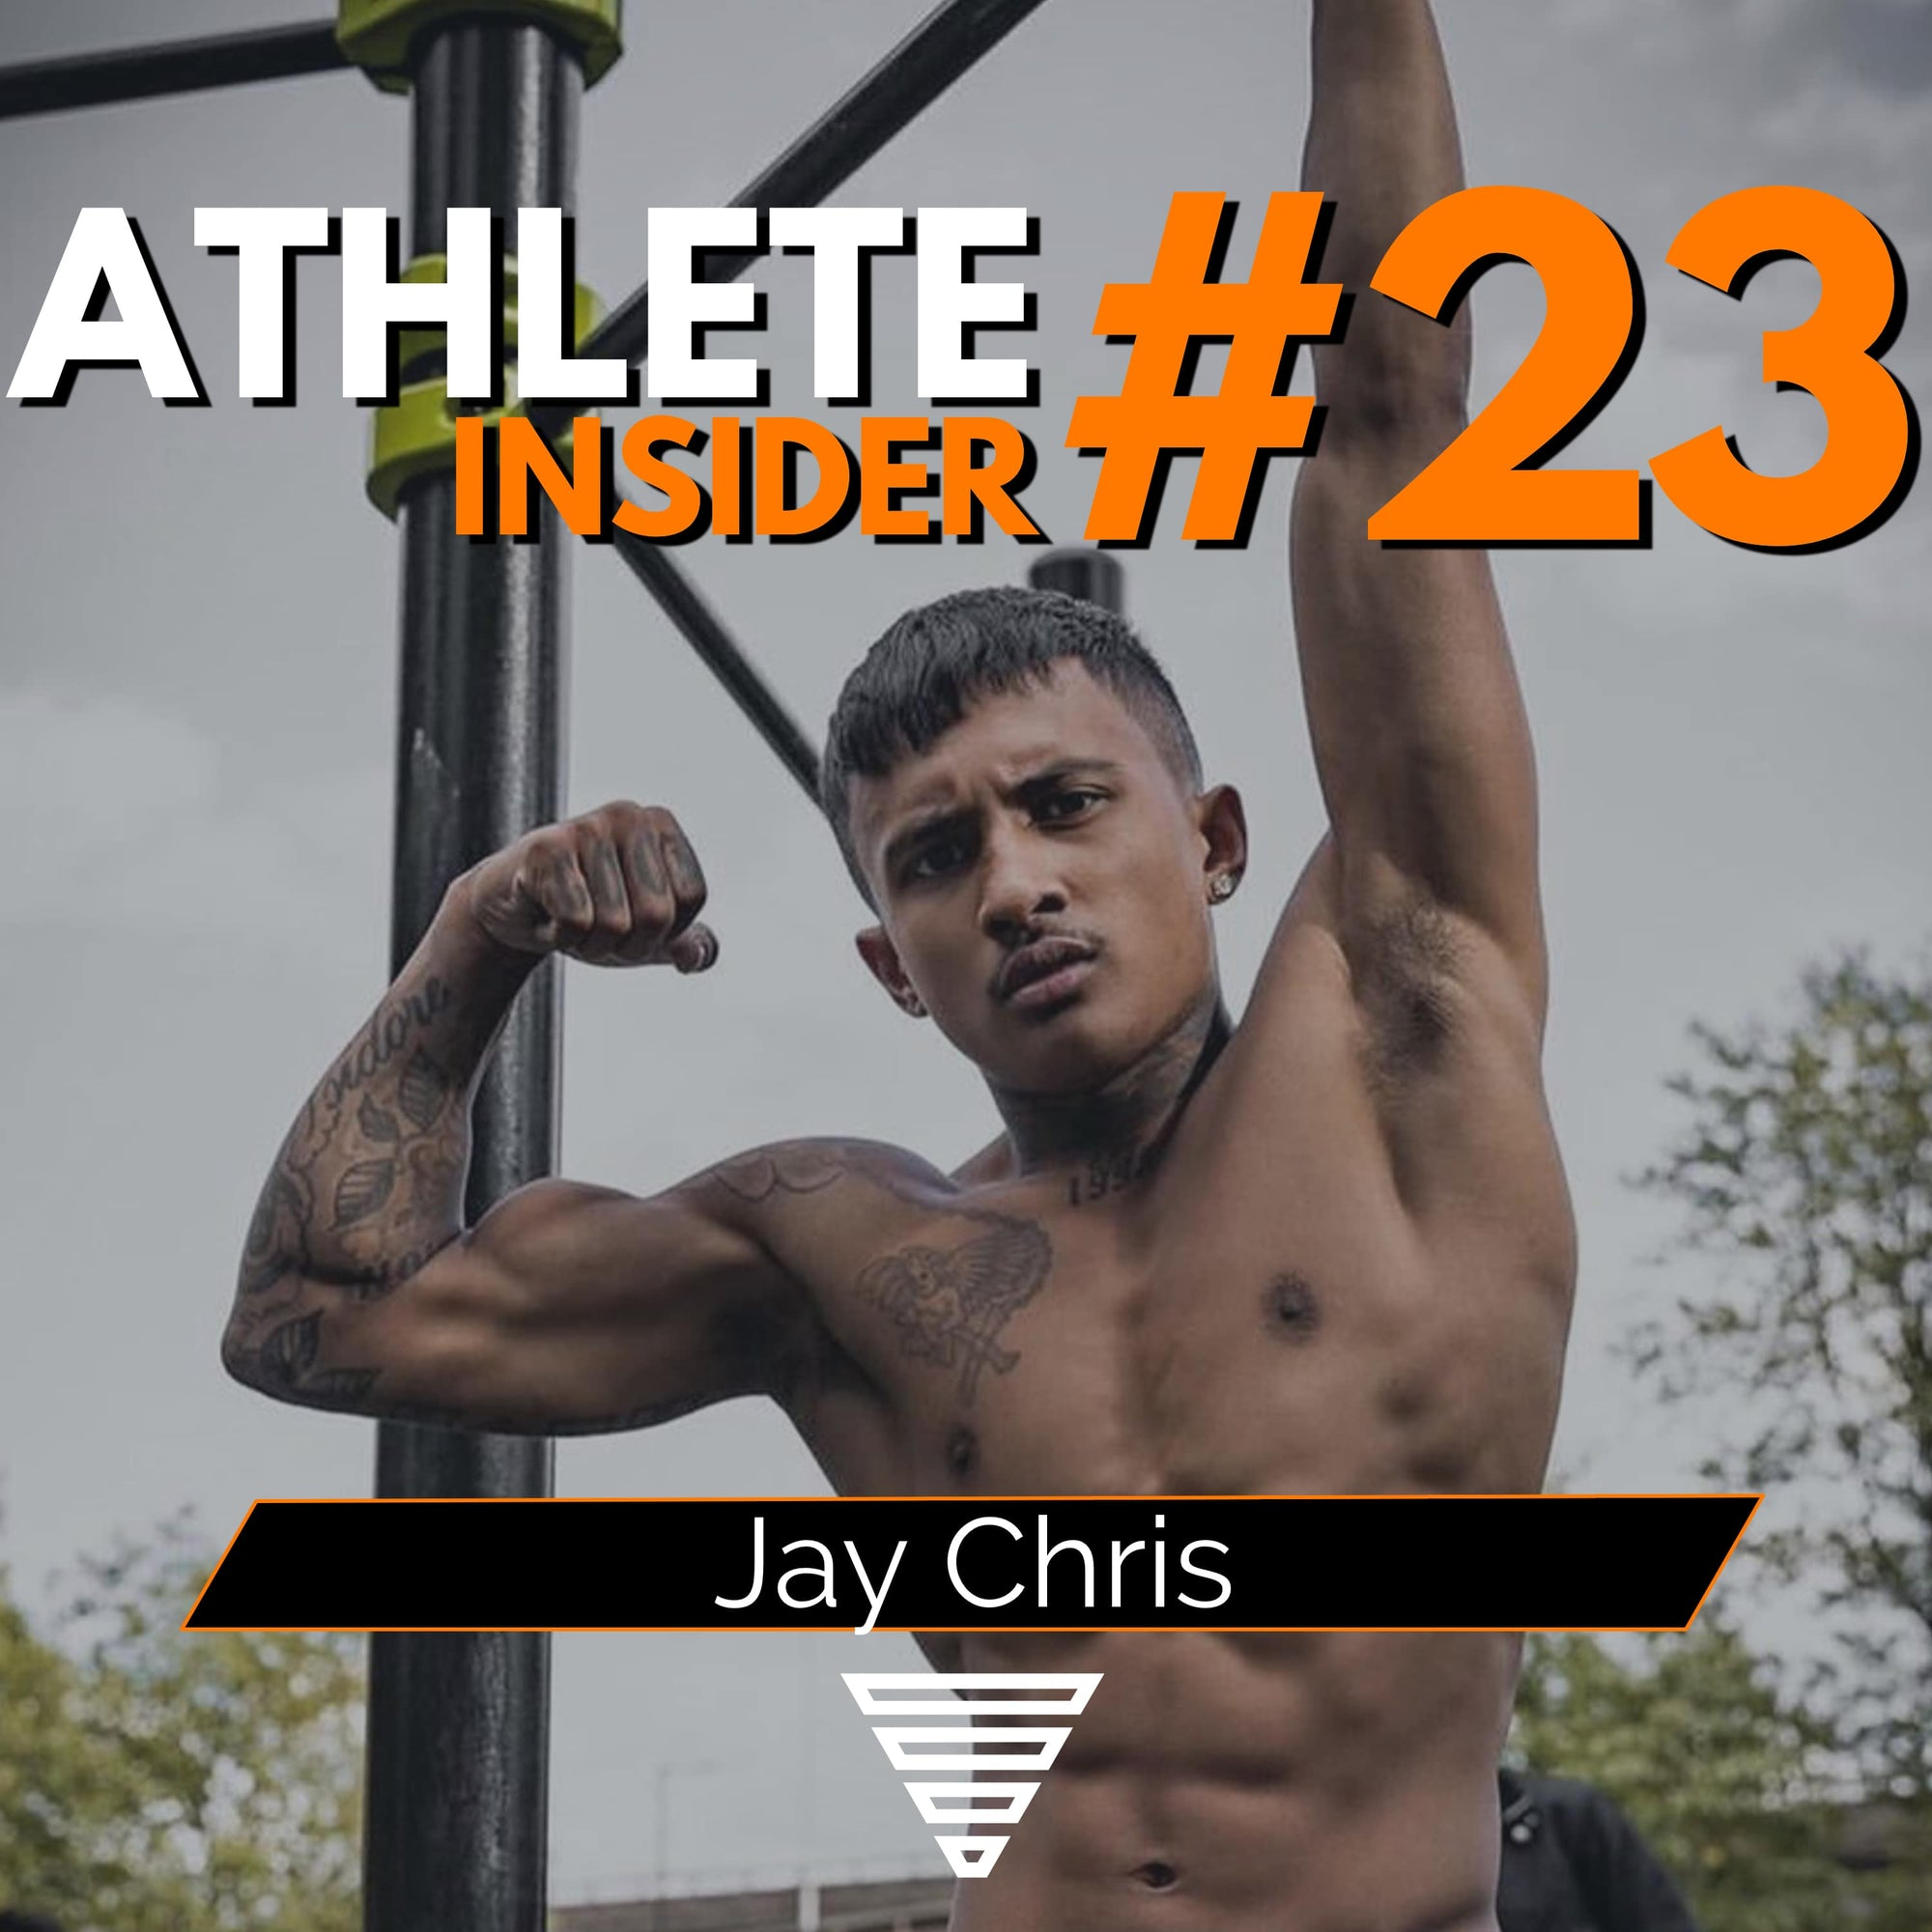 JAY CHRIS | What you didn't know about him | Interview | The Athlete Insider Podcast #23